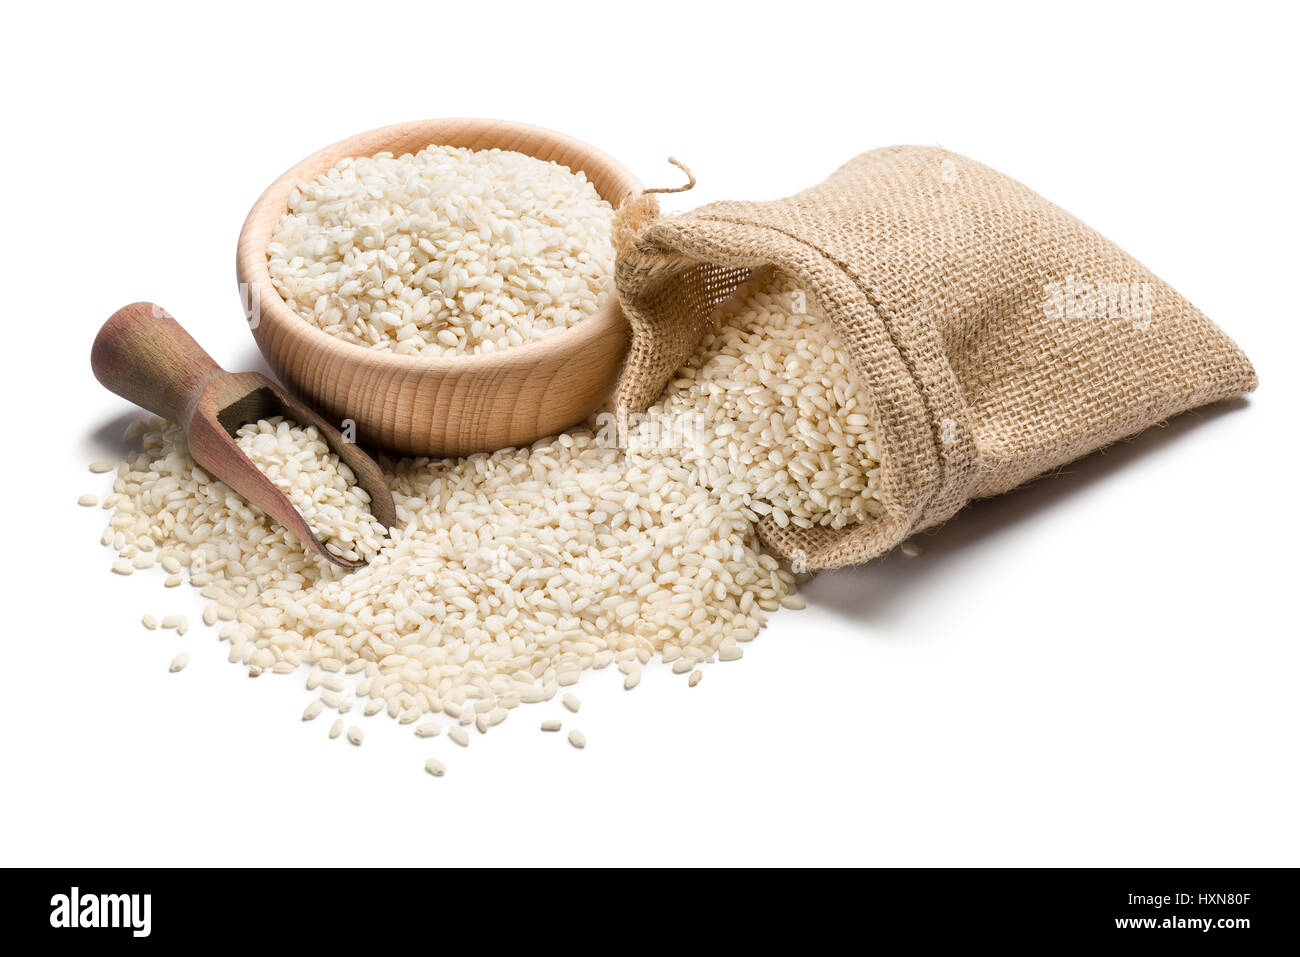 white rice in wooden bowl and juta bag on white background - Stock Image